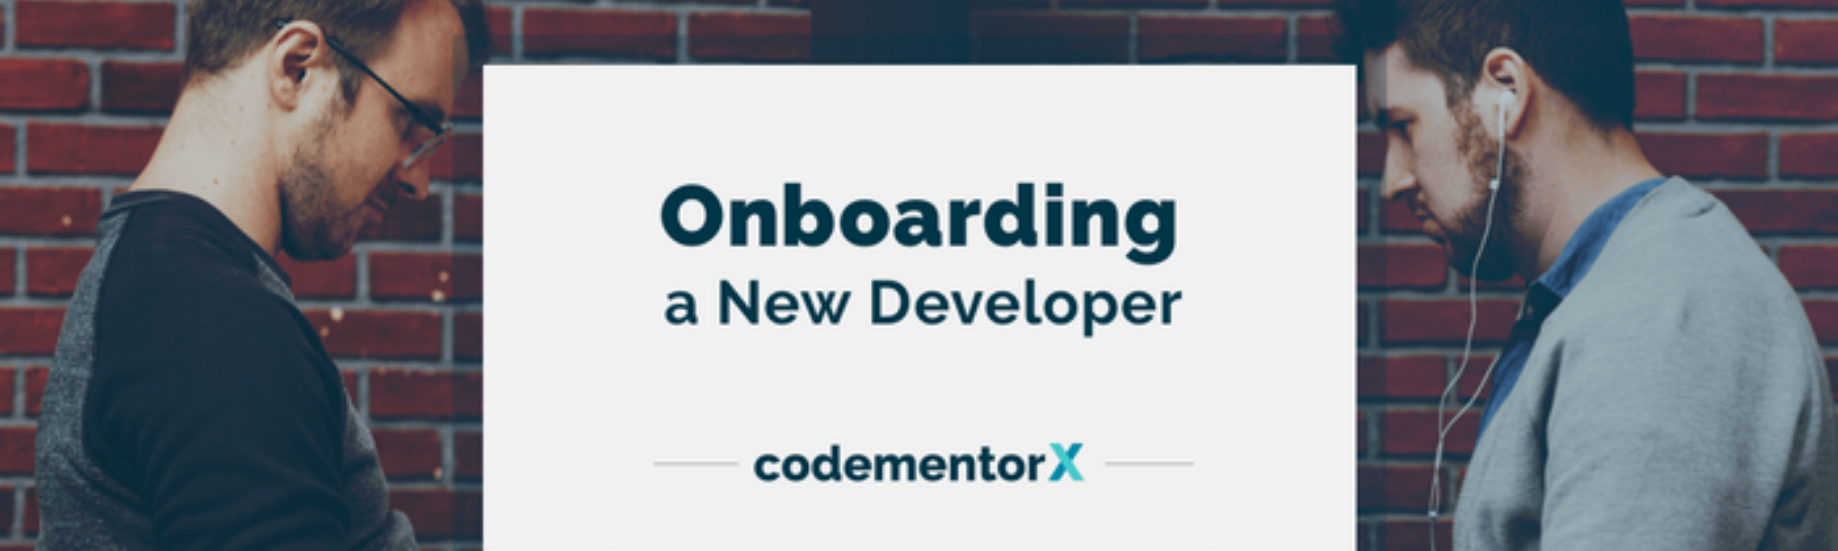 Here's how you should onboard new developers - Codementor